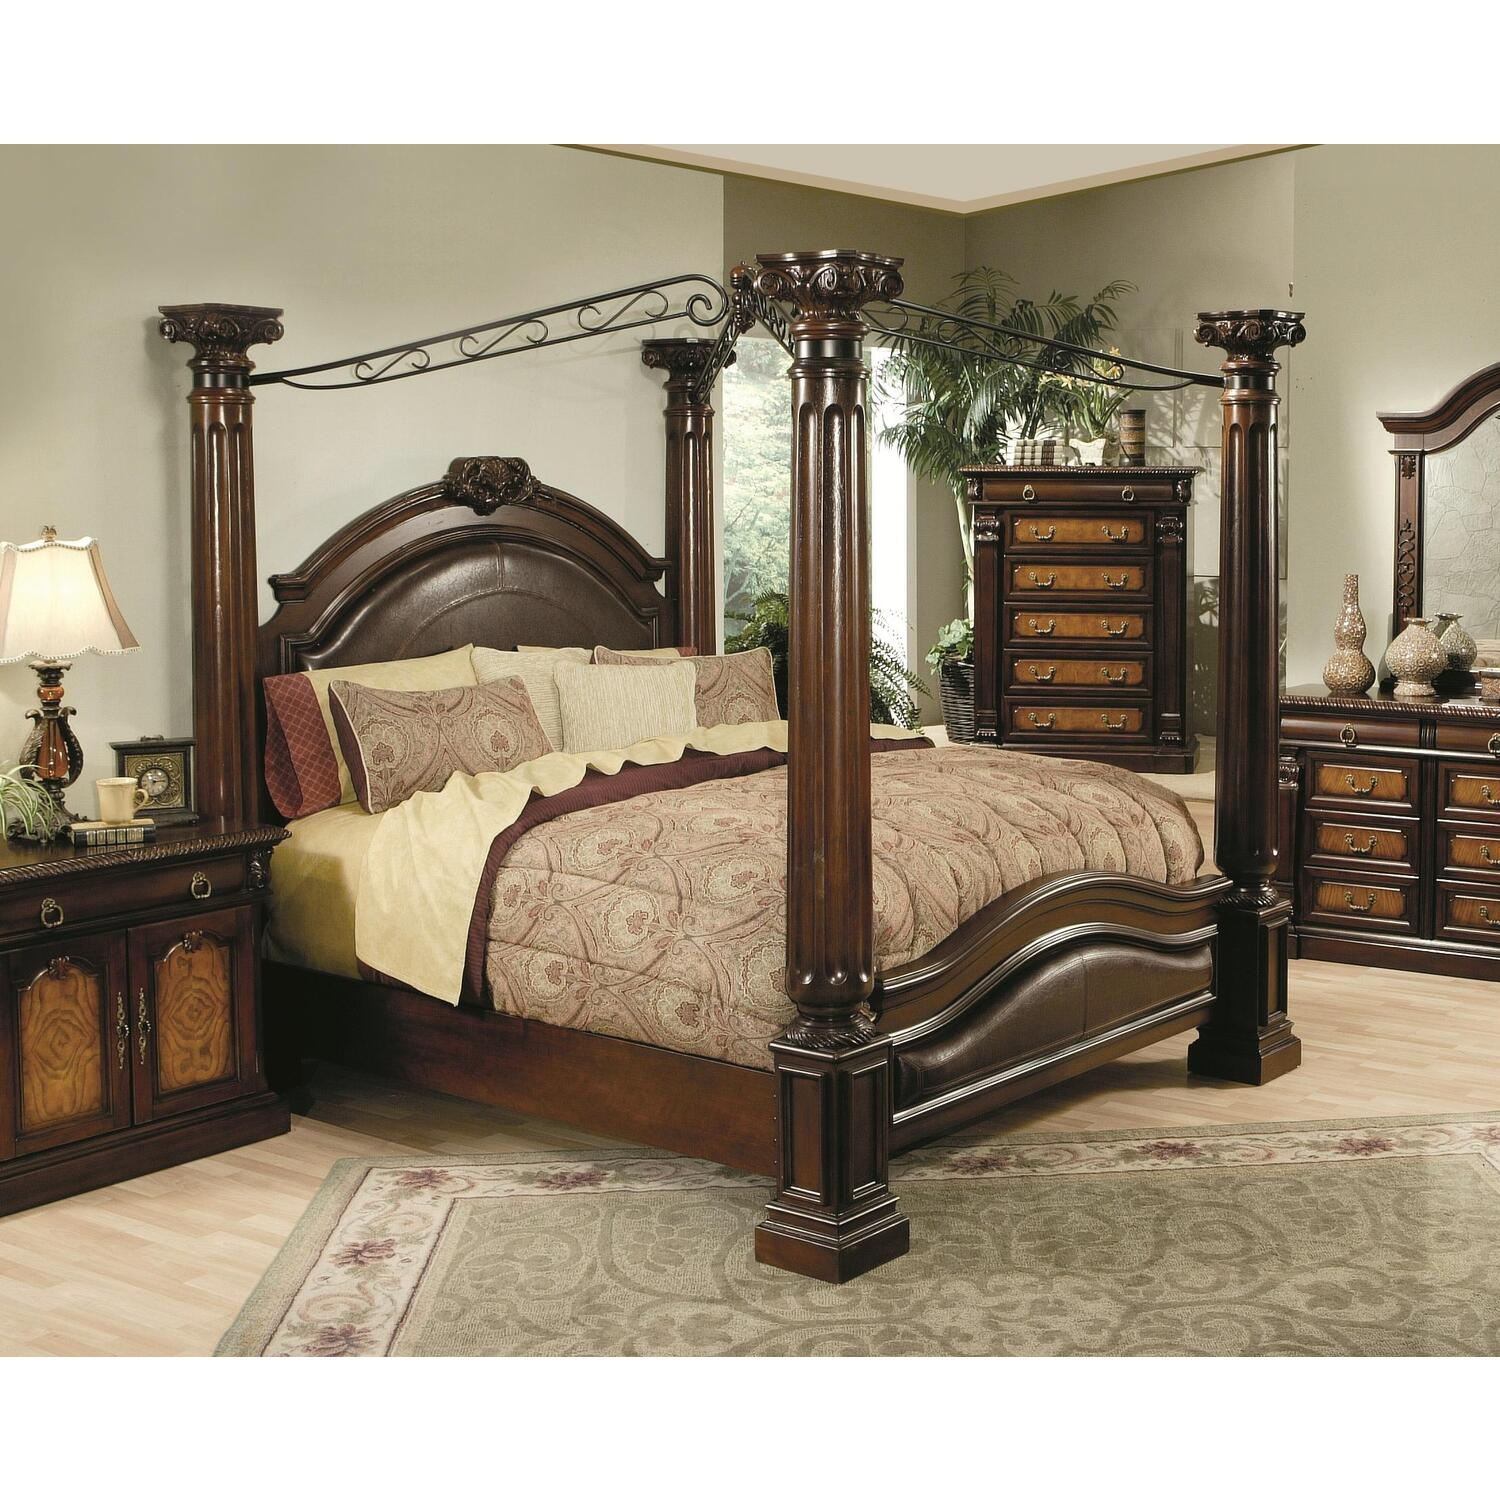 Girls Bedroom Sets in addition 29 Most Famous Castles World further Swimming Pool Landscaping Ideas also 4242617833 additionally 80134 Co American Design Landscape Backyard Outdoor Living Built In Grill Fireplace St ed Concrete Patio 9963. on north carolina furniture world